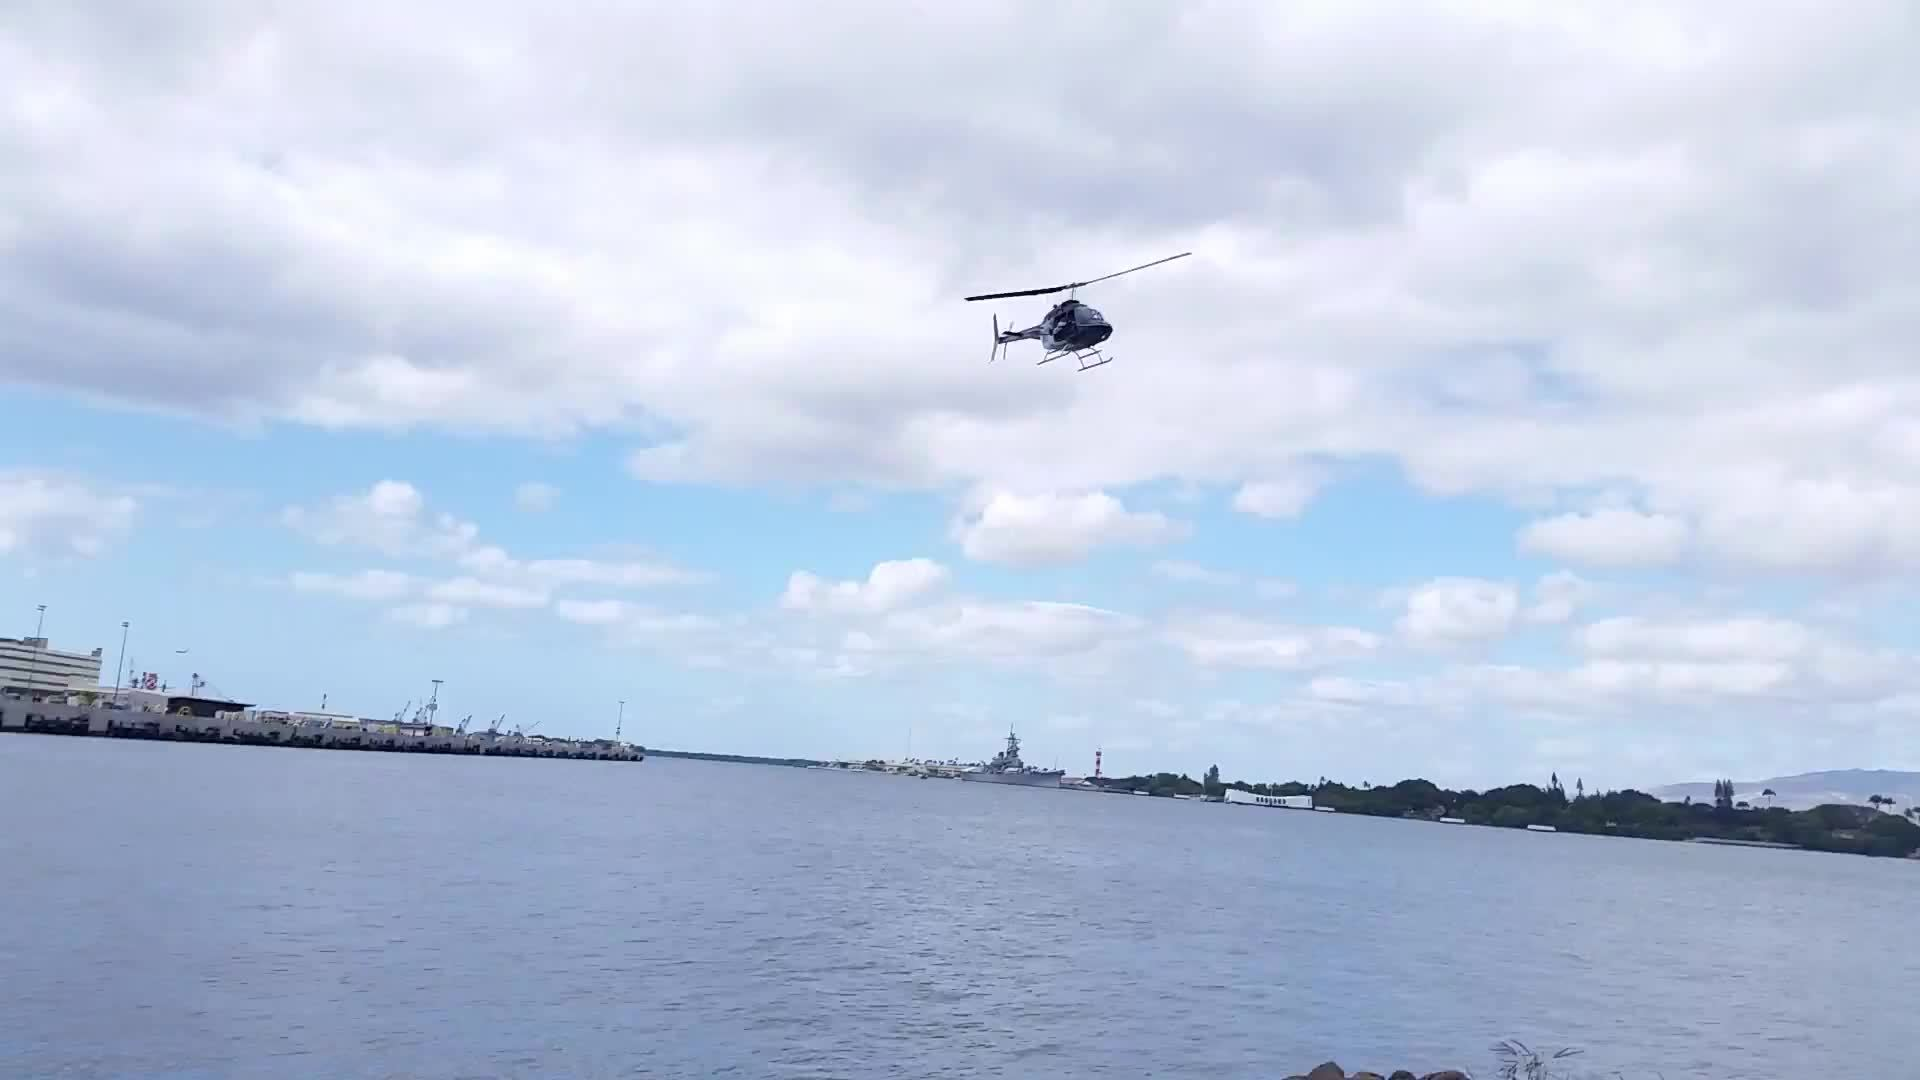 Helicopter Crash Pearl Harbor 2/18/16 10:15 am Eyewitness GIFs